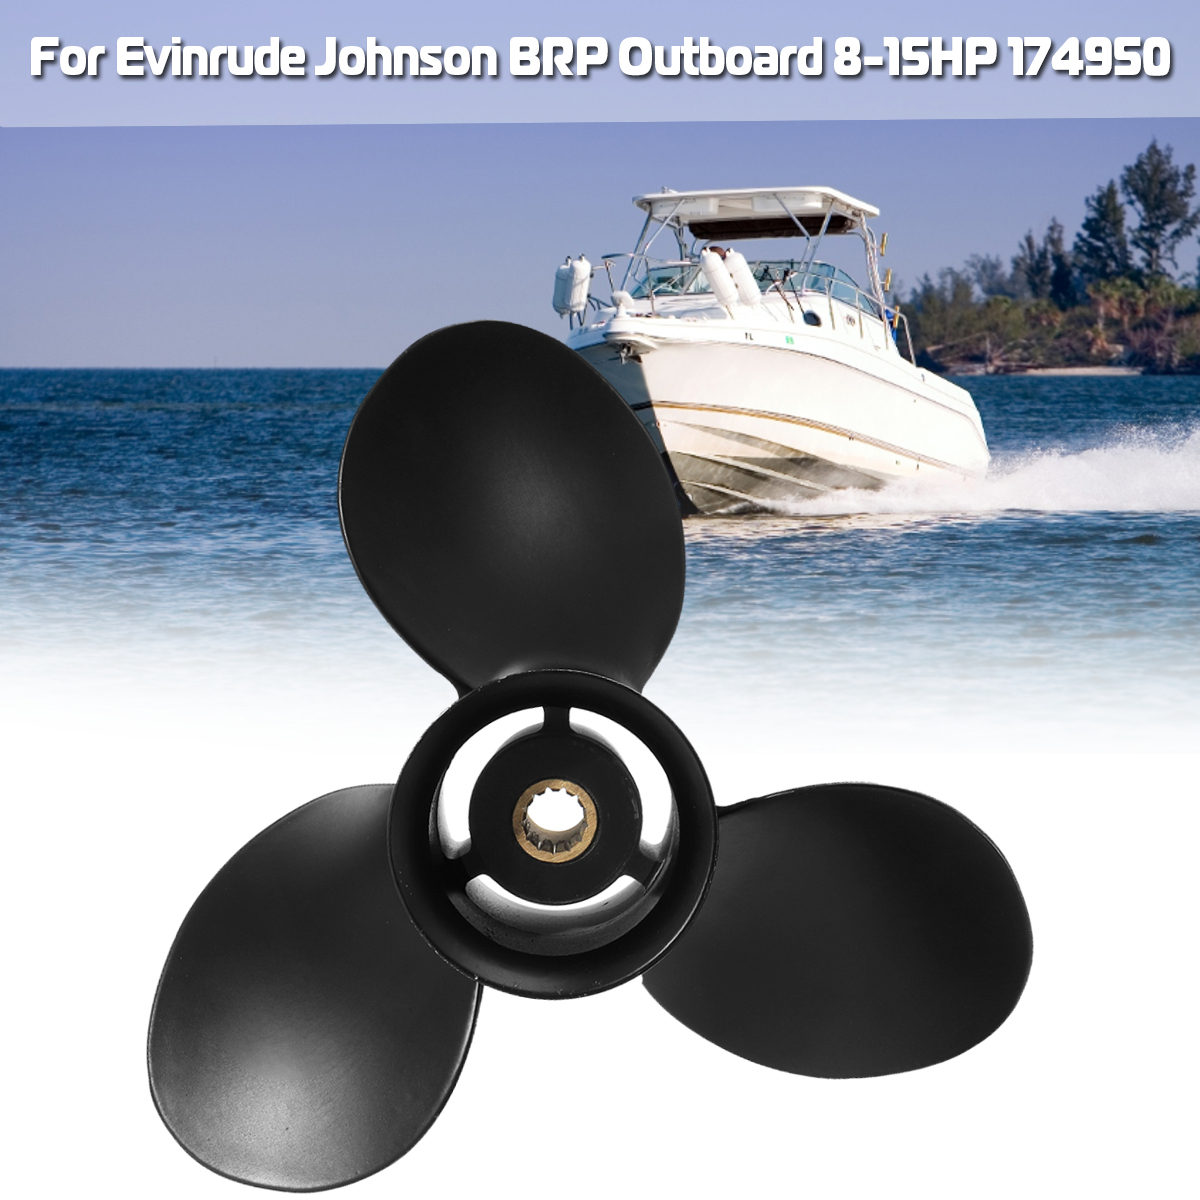 hight resolution of 174950 778772 for evinrude johnson brp 8 15hp 9 1 4 x 10